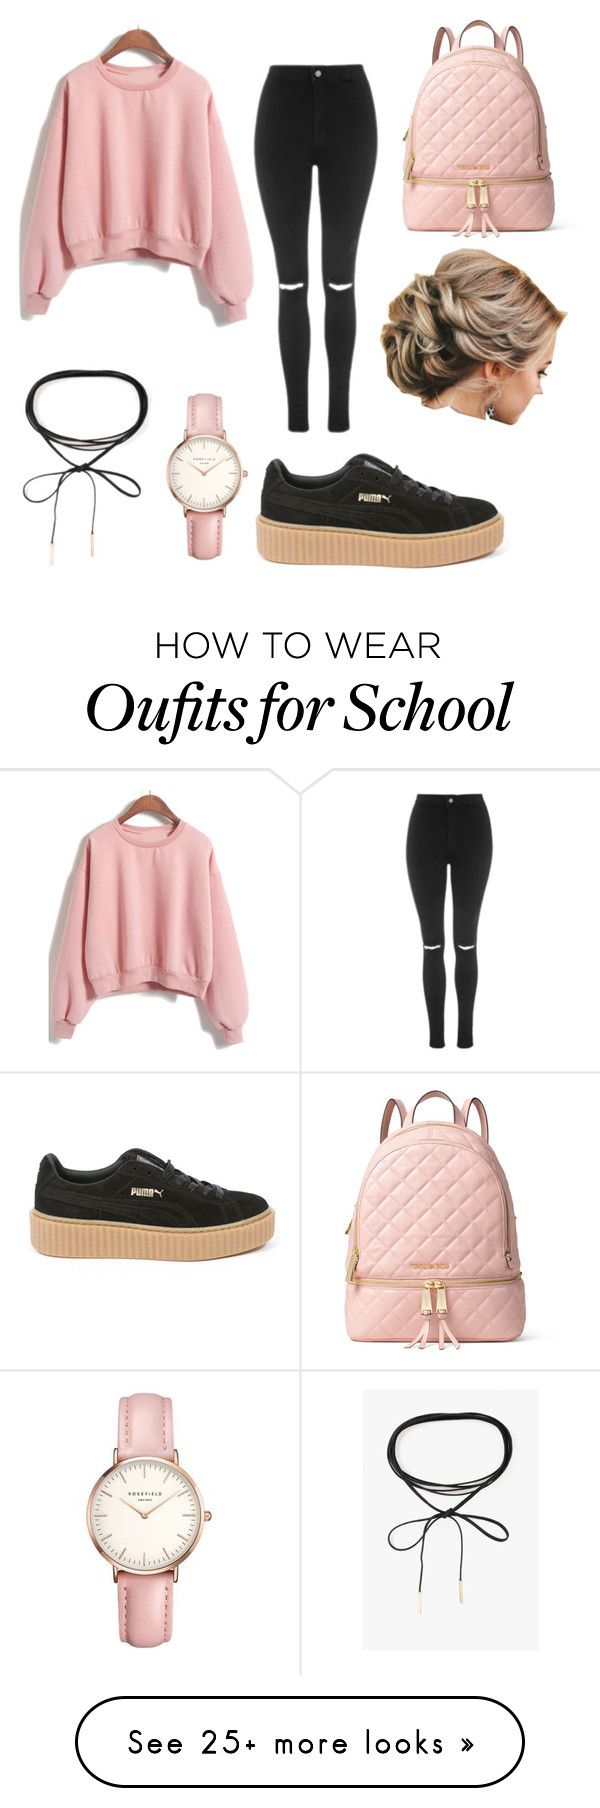 """School"" by nastilife on Polyvore featuring Topshop, Azalea, Puma and MICHAEL Michael Kors"